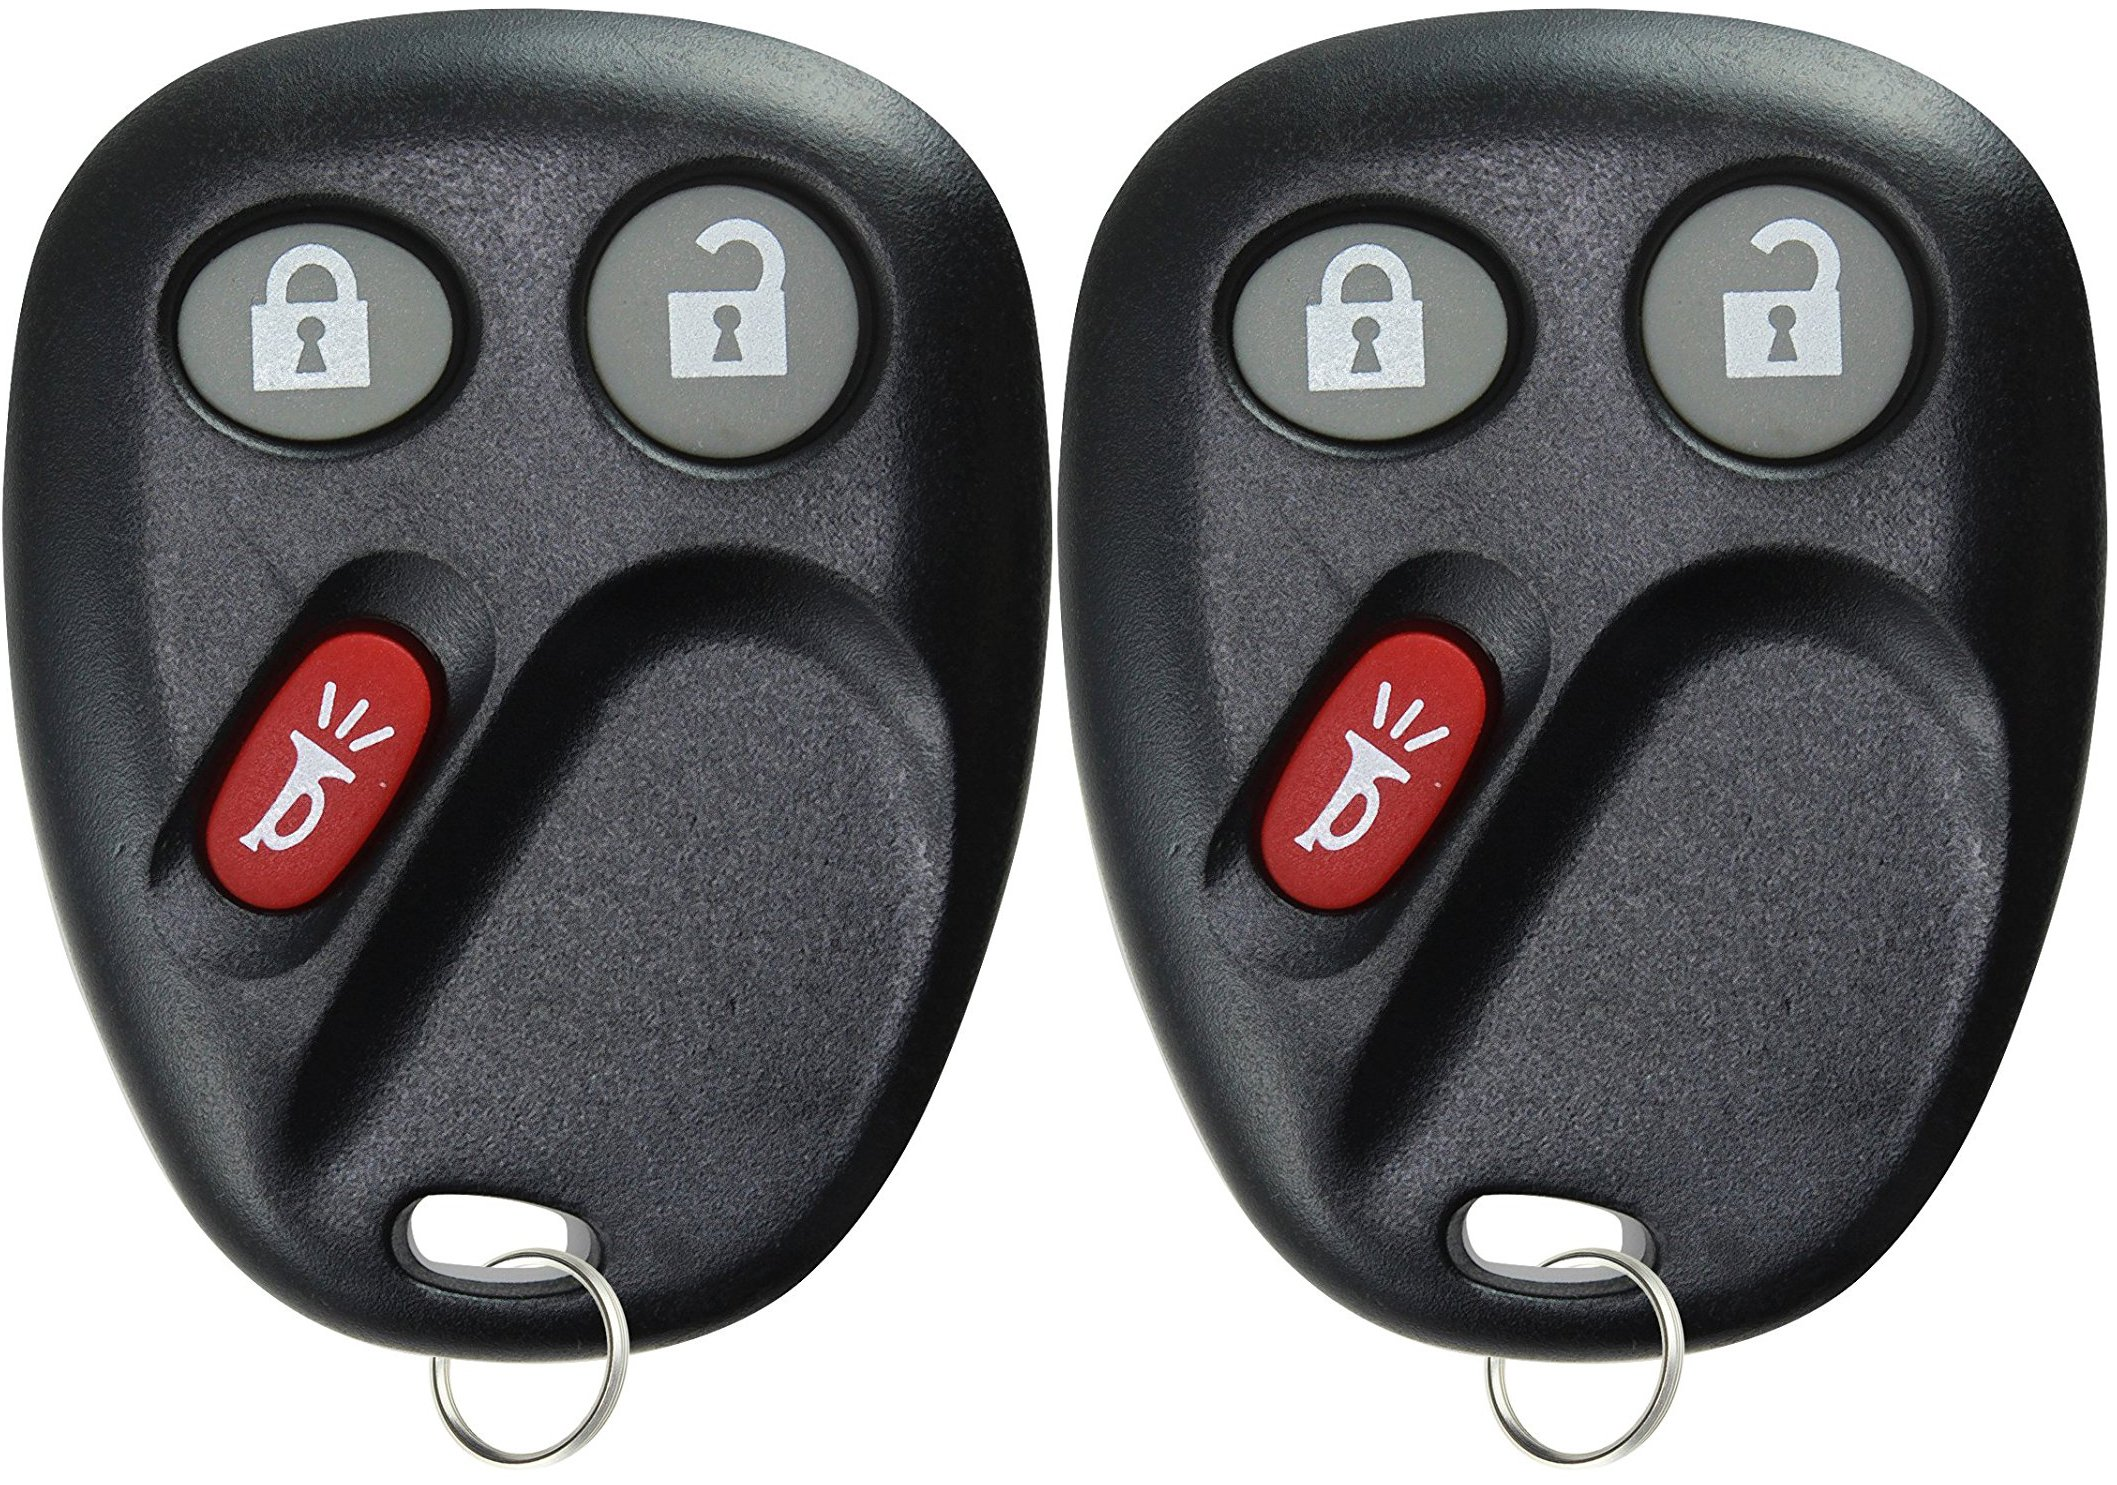 KeylessOption Keyless Entry Remote Control Car Key Fob Replacement for LHJ011 (Pack of 2) by KeylessOption